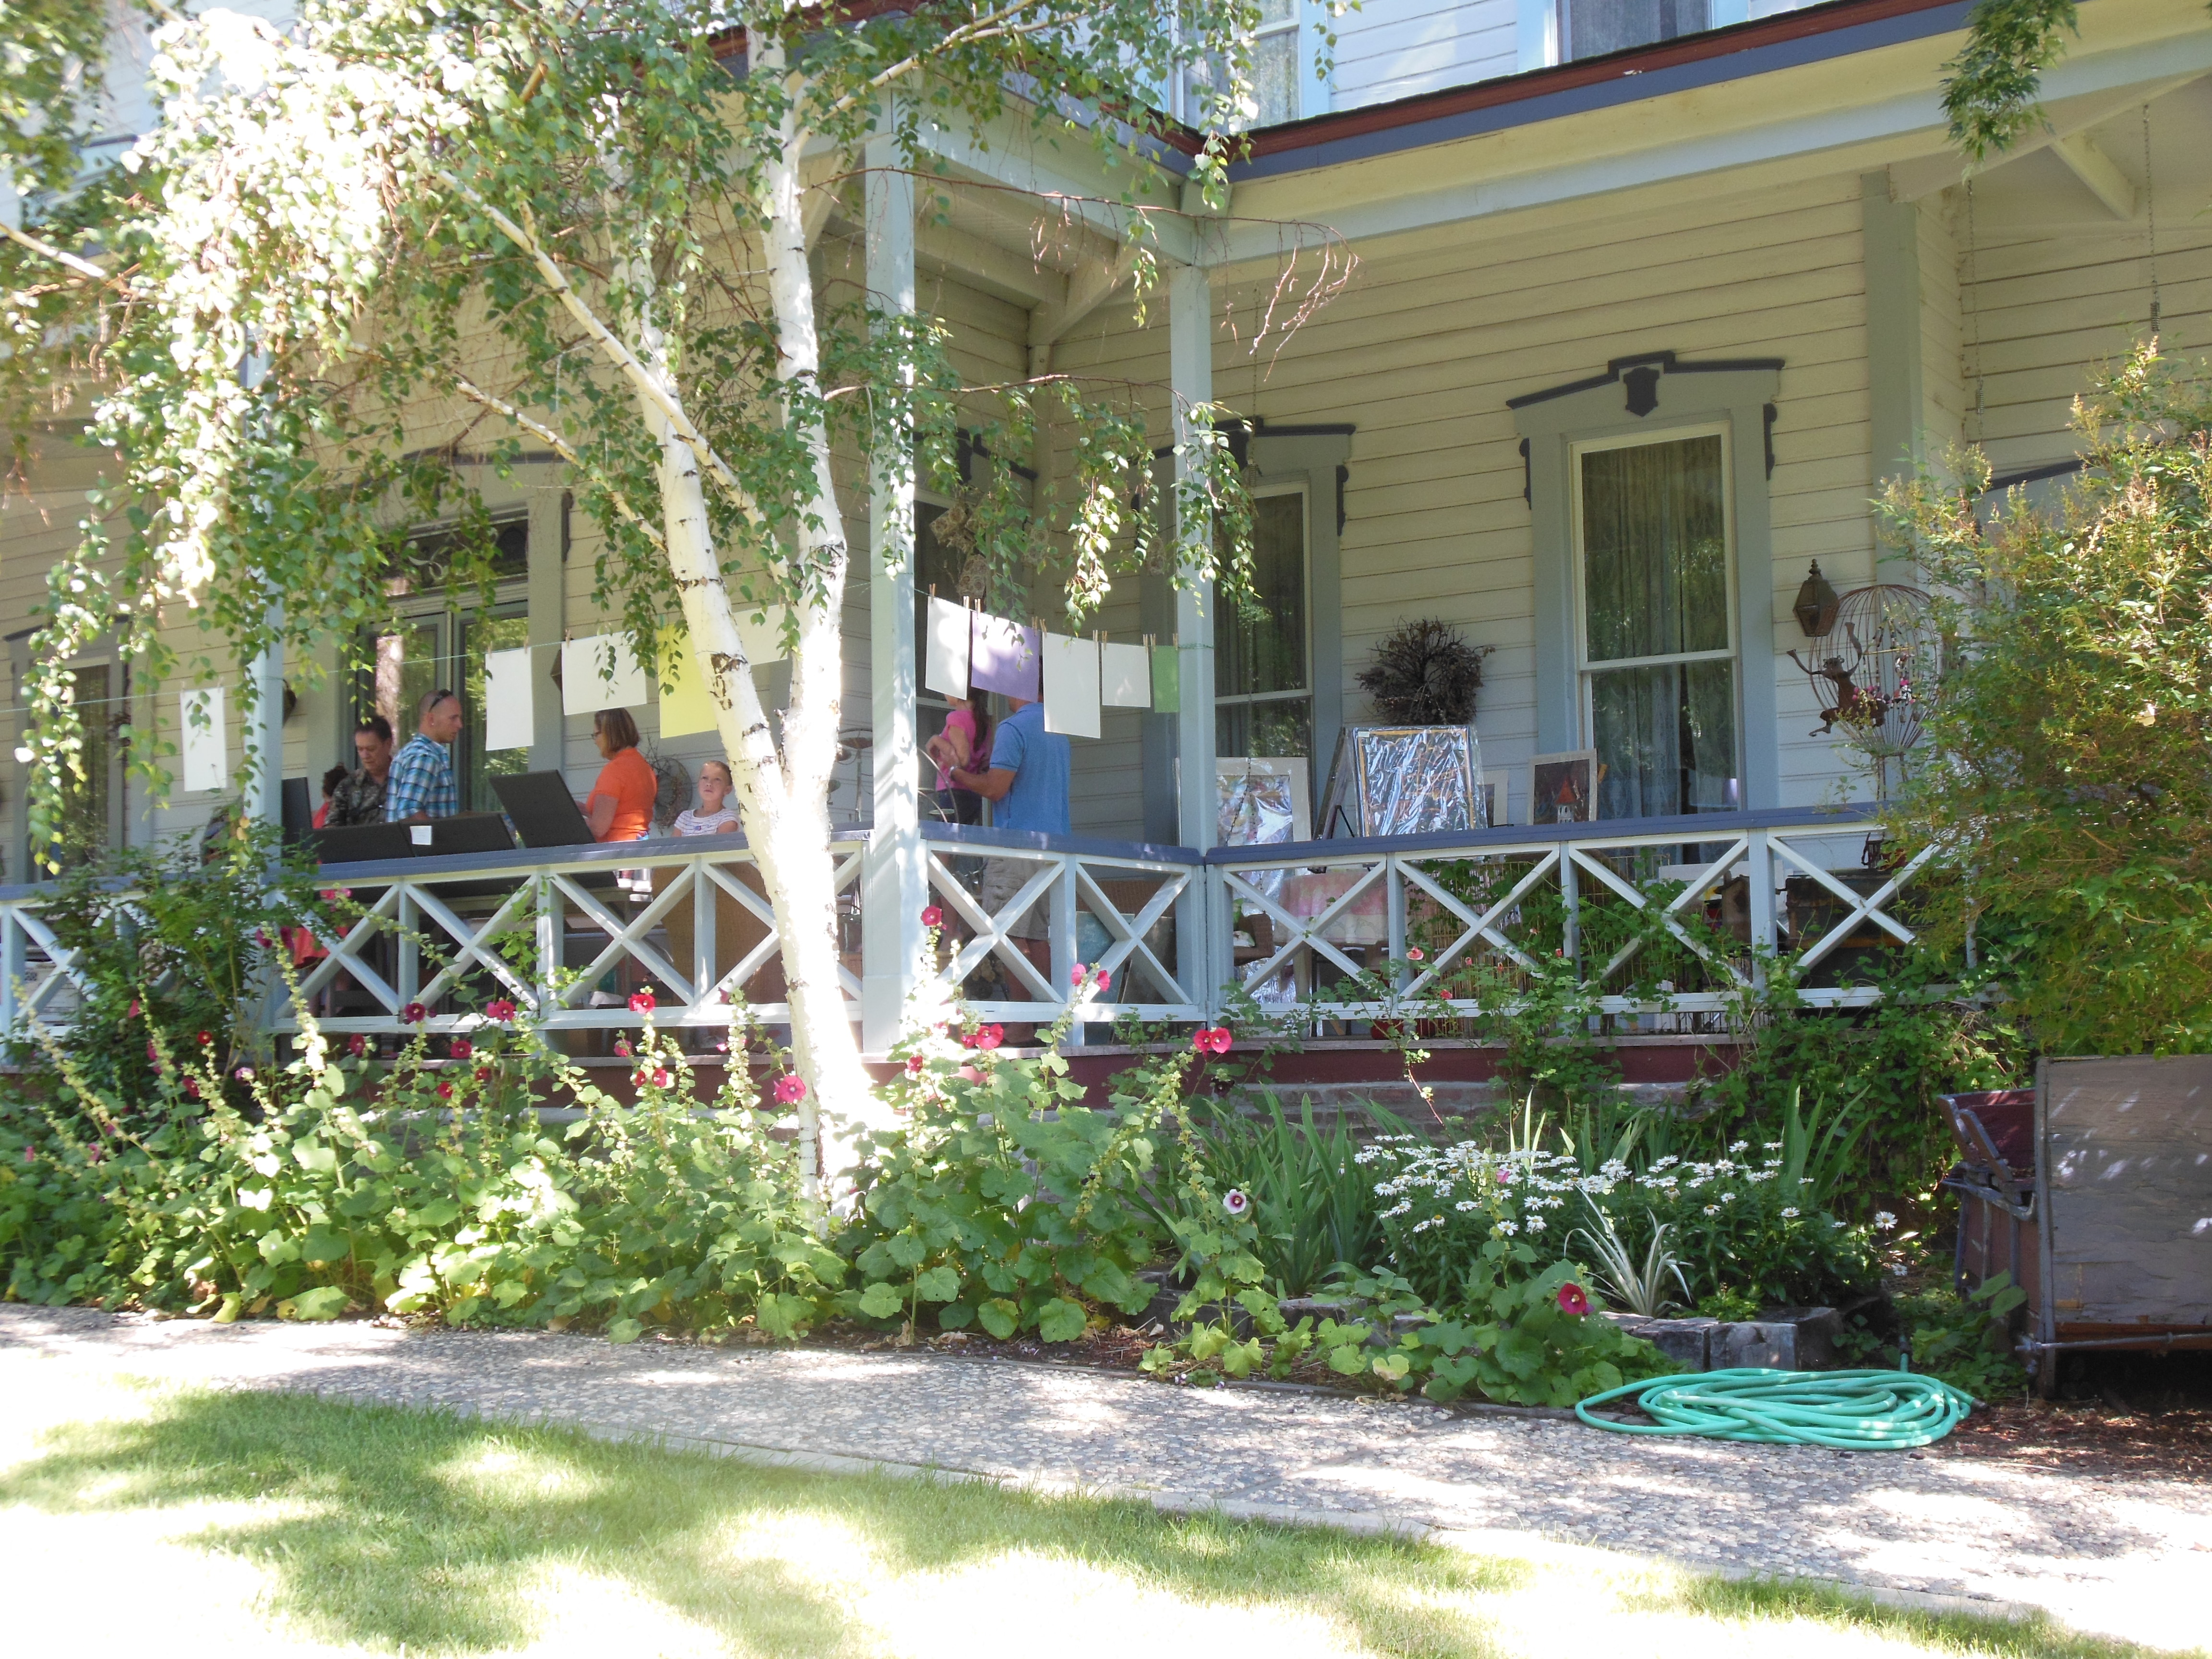 Art on the Porch, Bliss Mansion, summer 2014